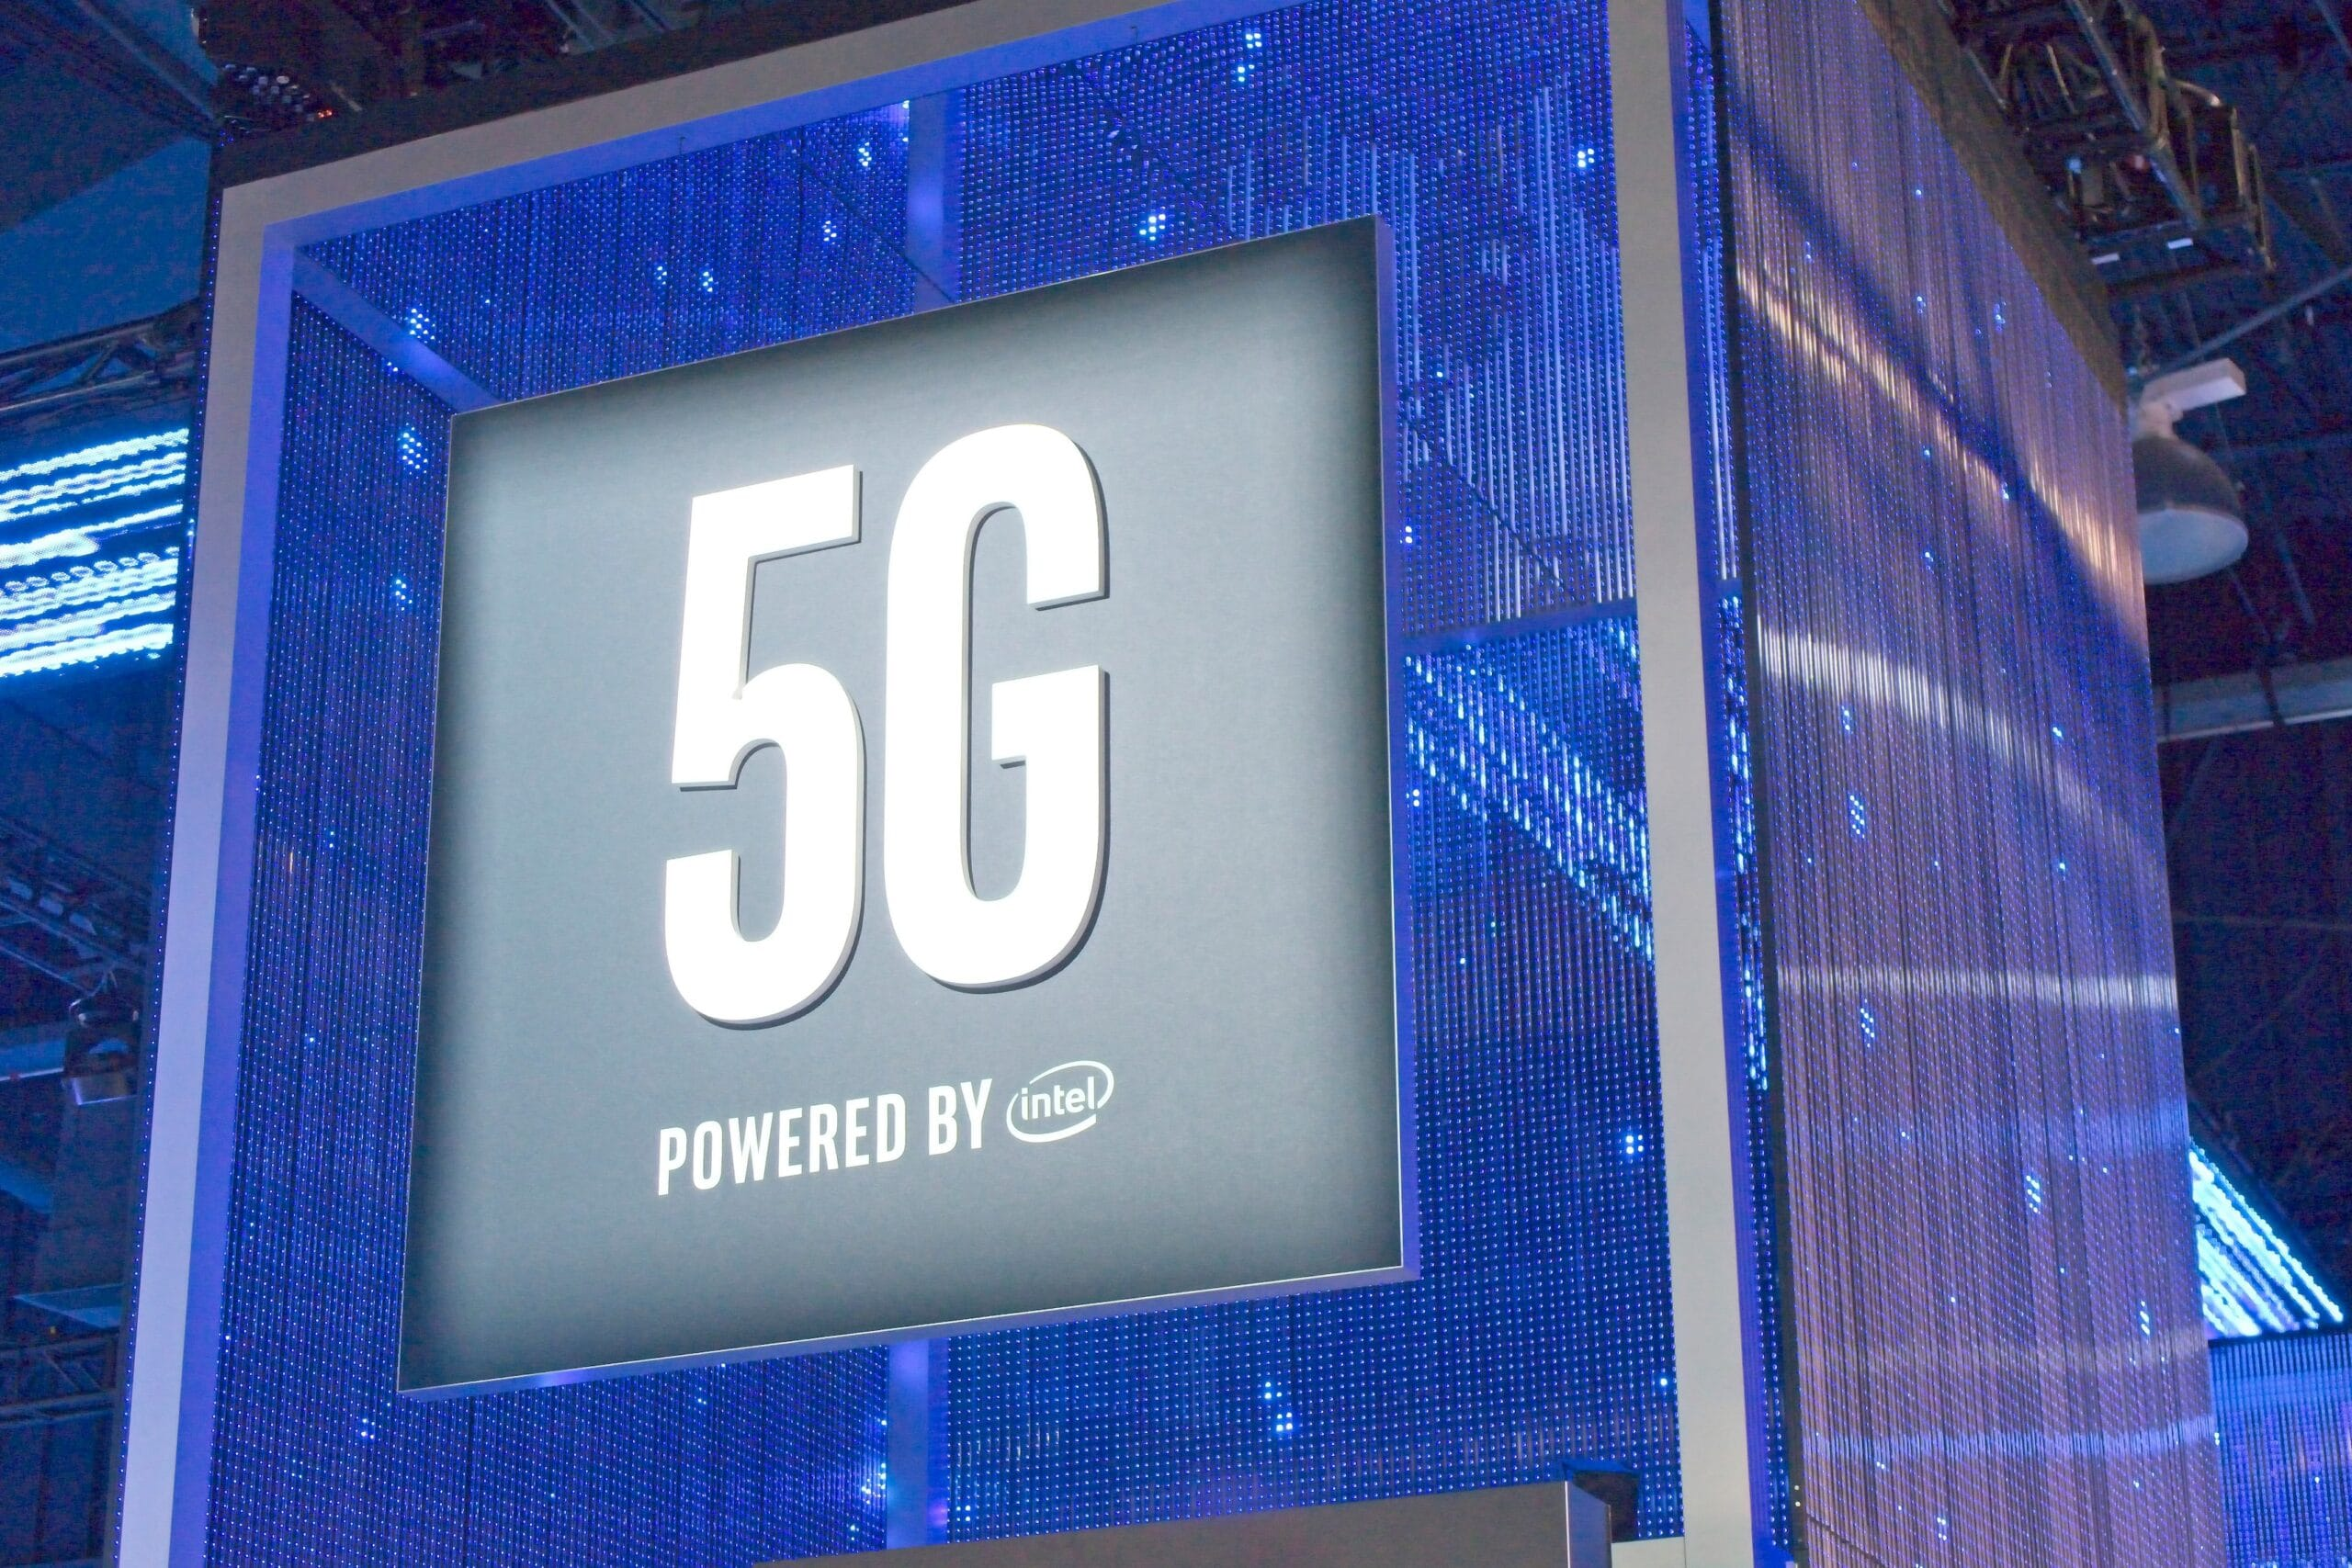 5G - Powered by Intel